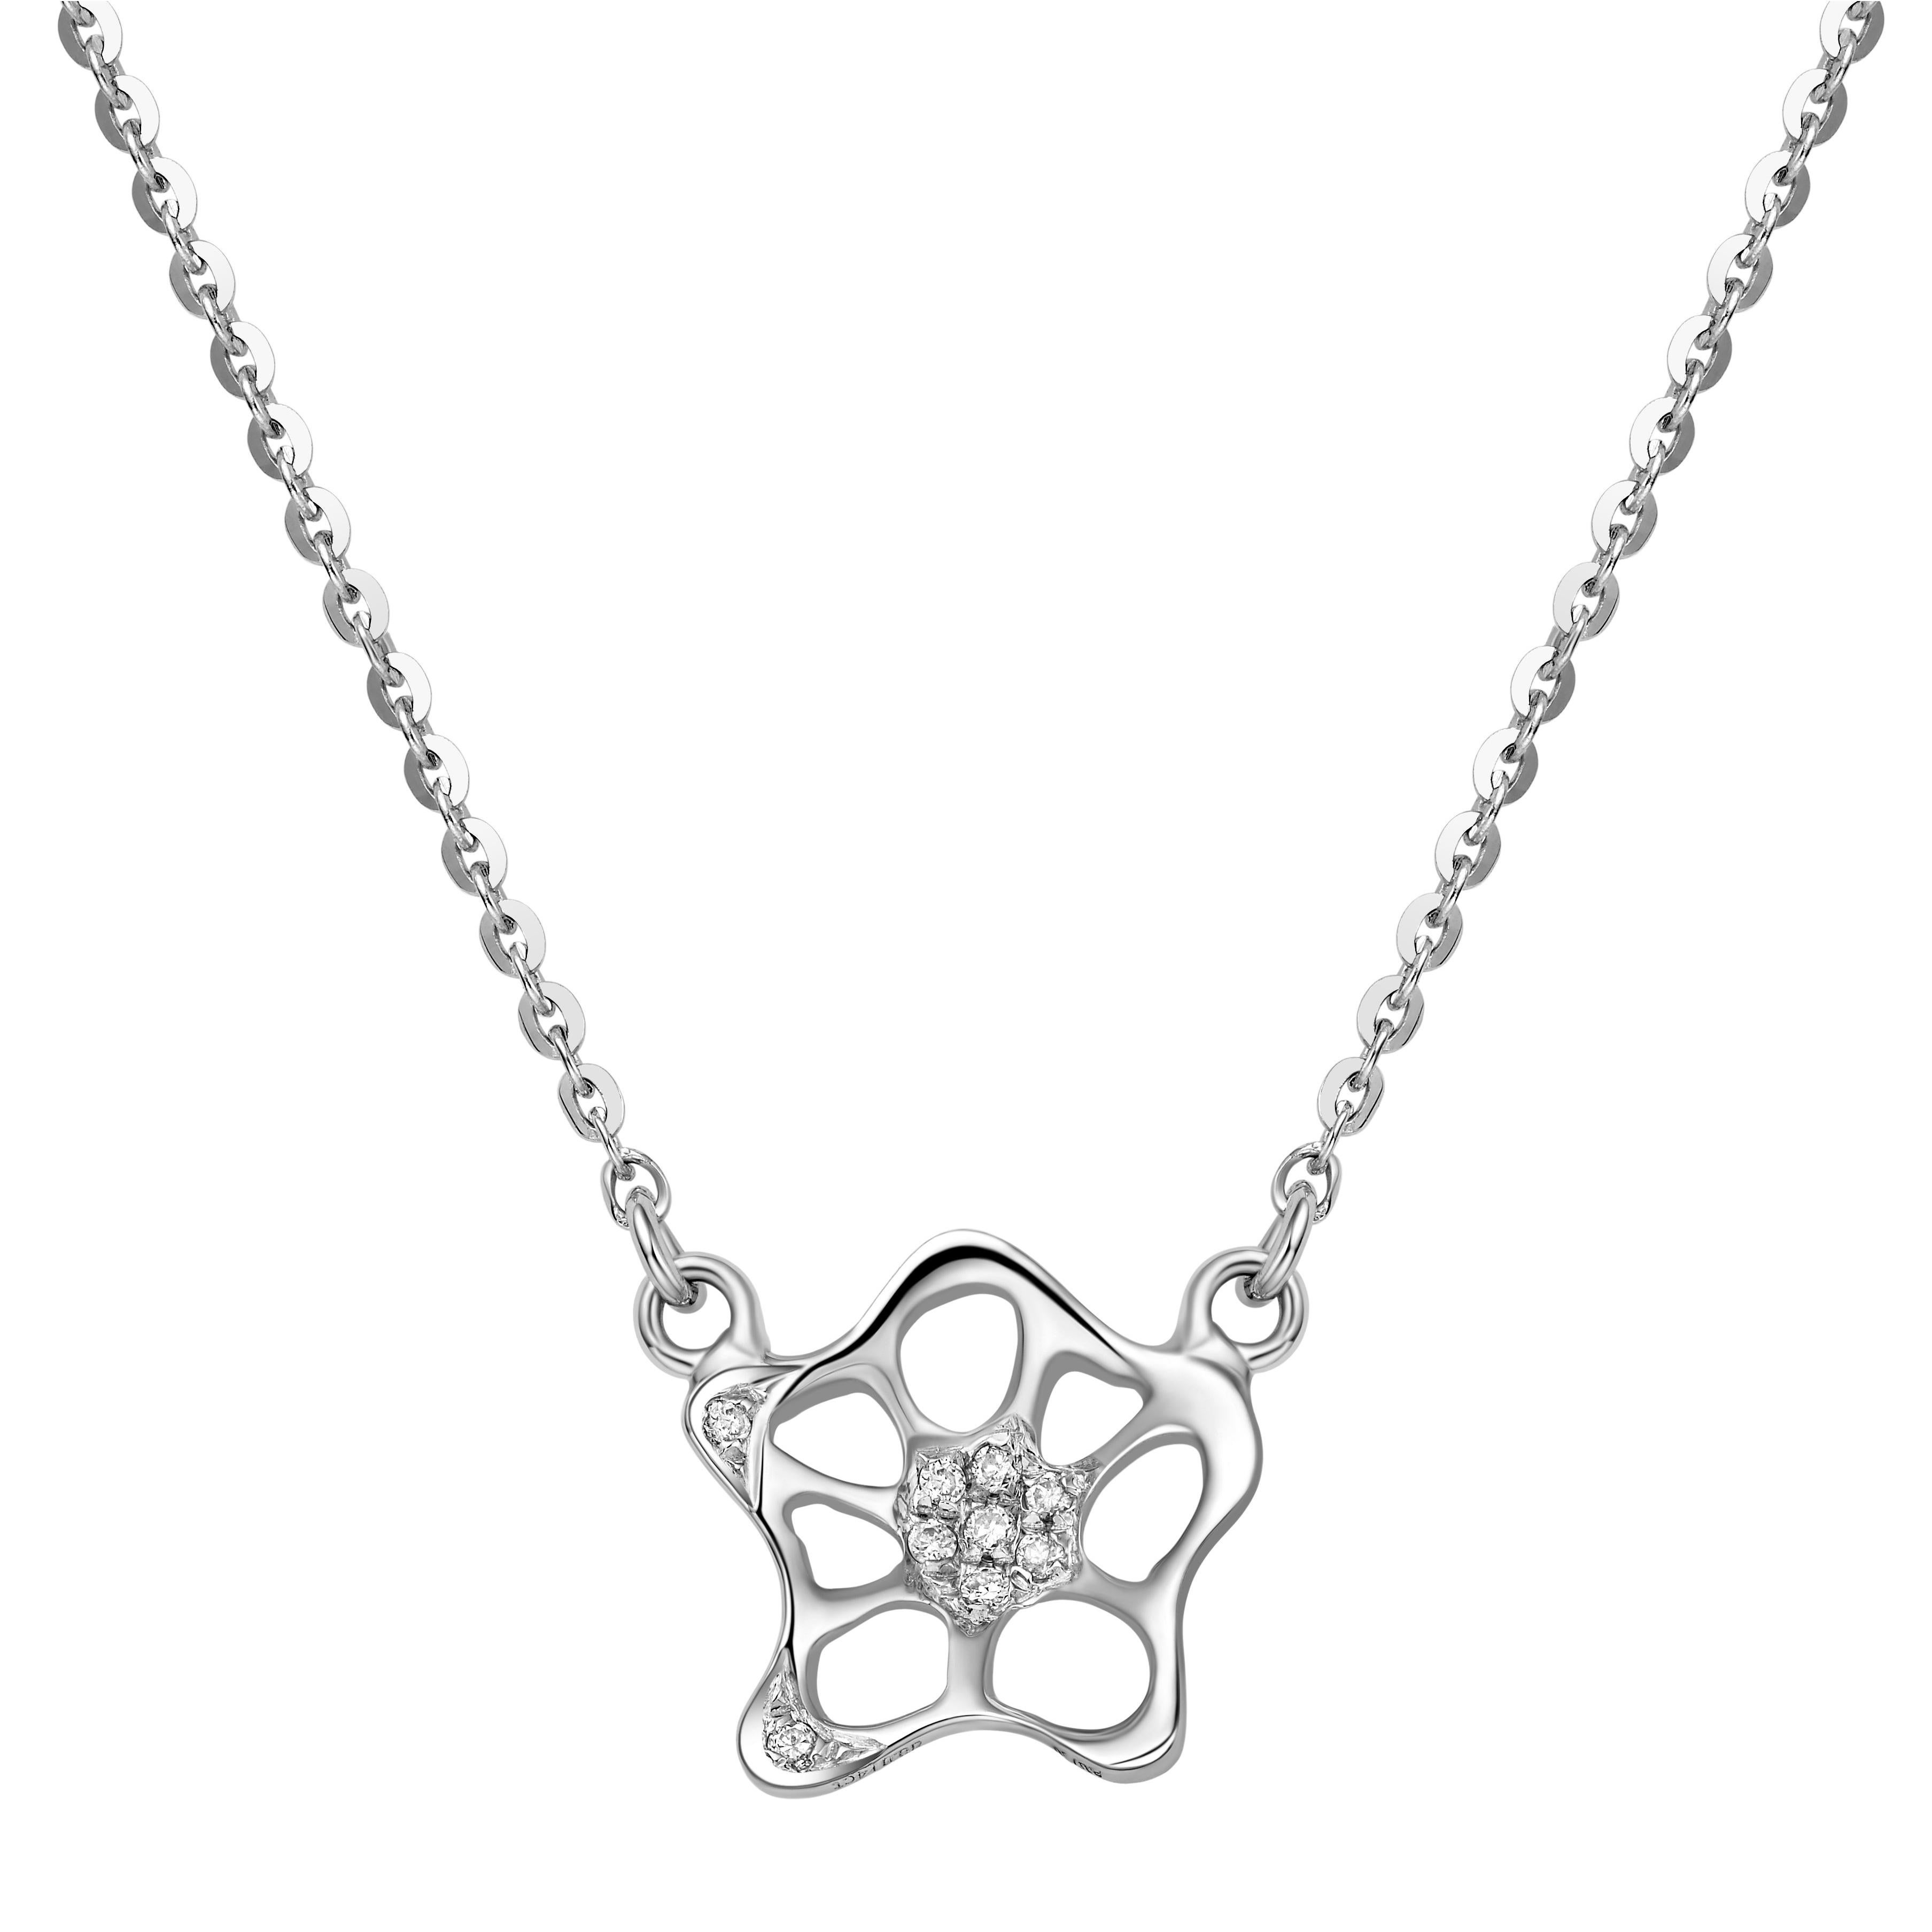 Fei Liu 18 Karat White Gold Small Unit Pendant Necklace For Sale At